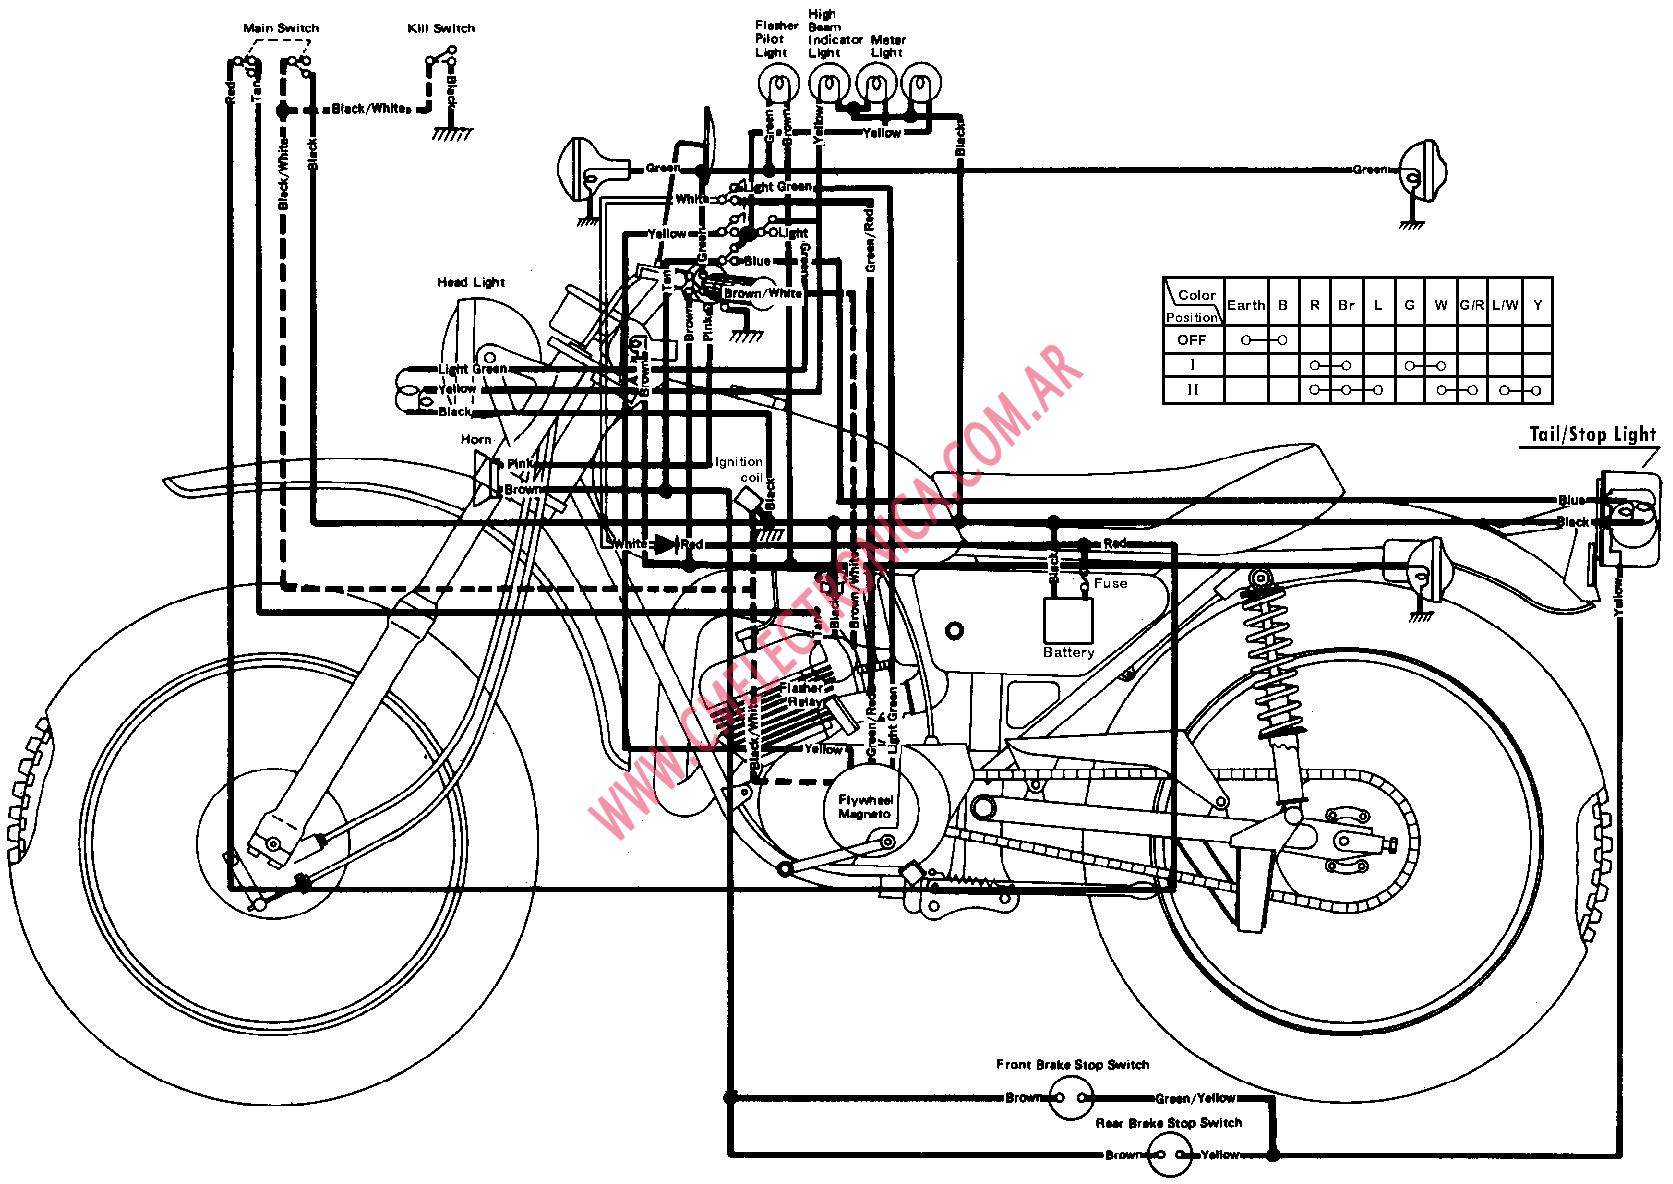 Yamaha Dt250 Electrical Diagram